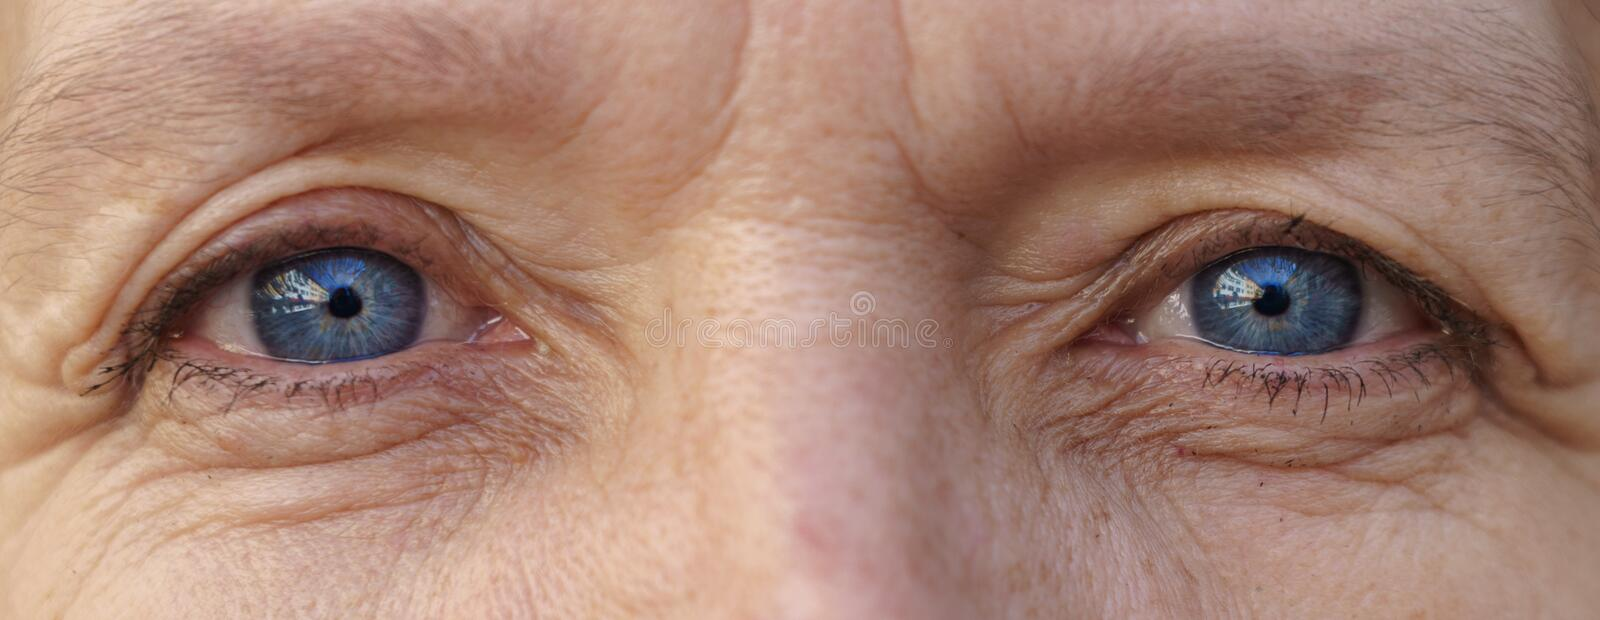 Blue eyes of an elderly woman in close up view stock images